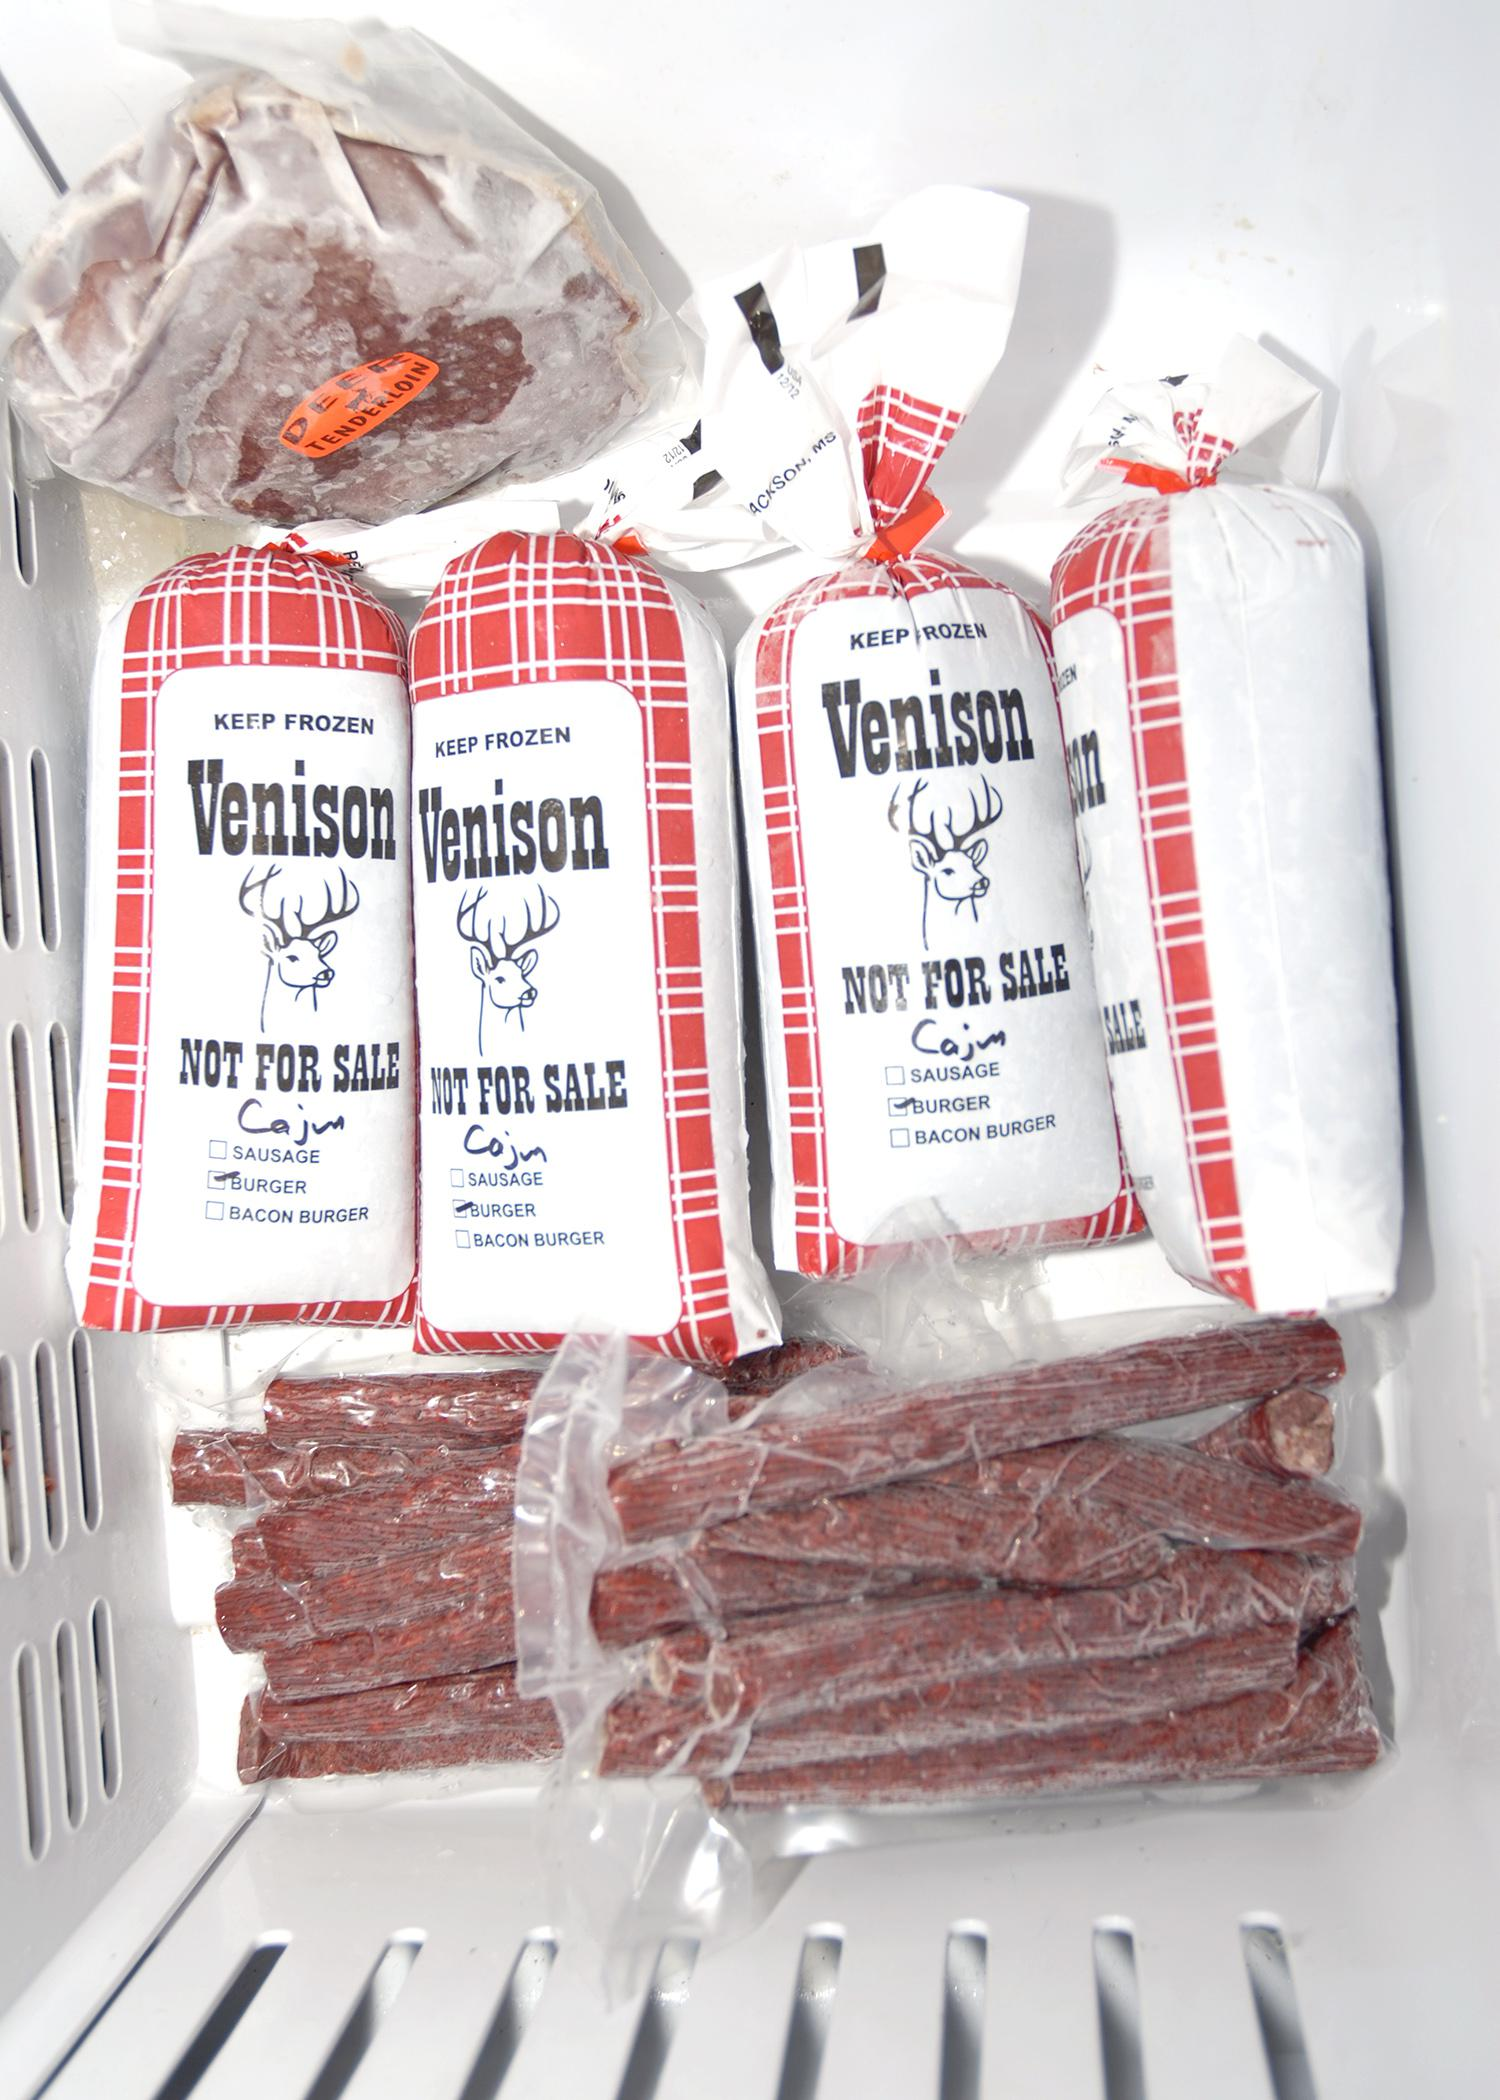 After processing, deer meat must be put into the freezer immediately for best flavor and highest quality. (Photo by MSU Ag Communications/Bonnie Coblentz)